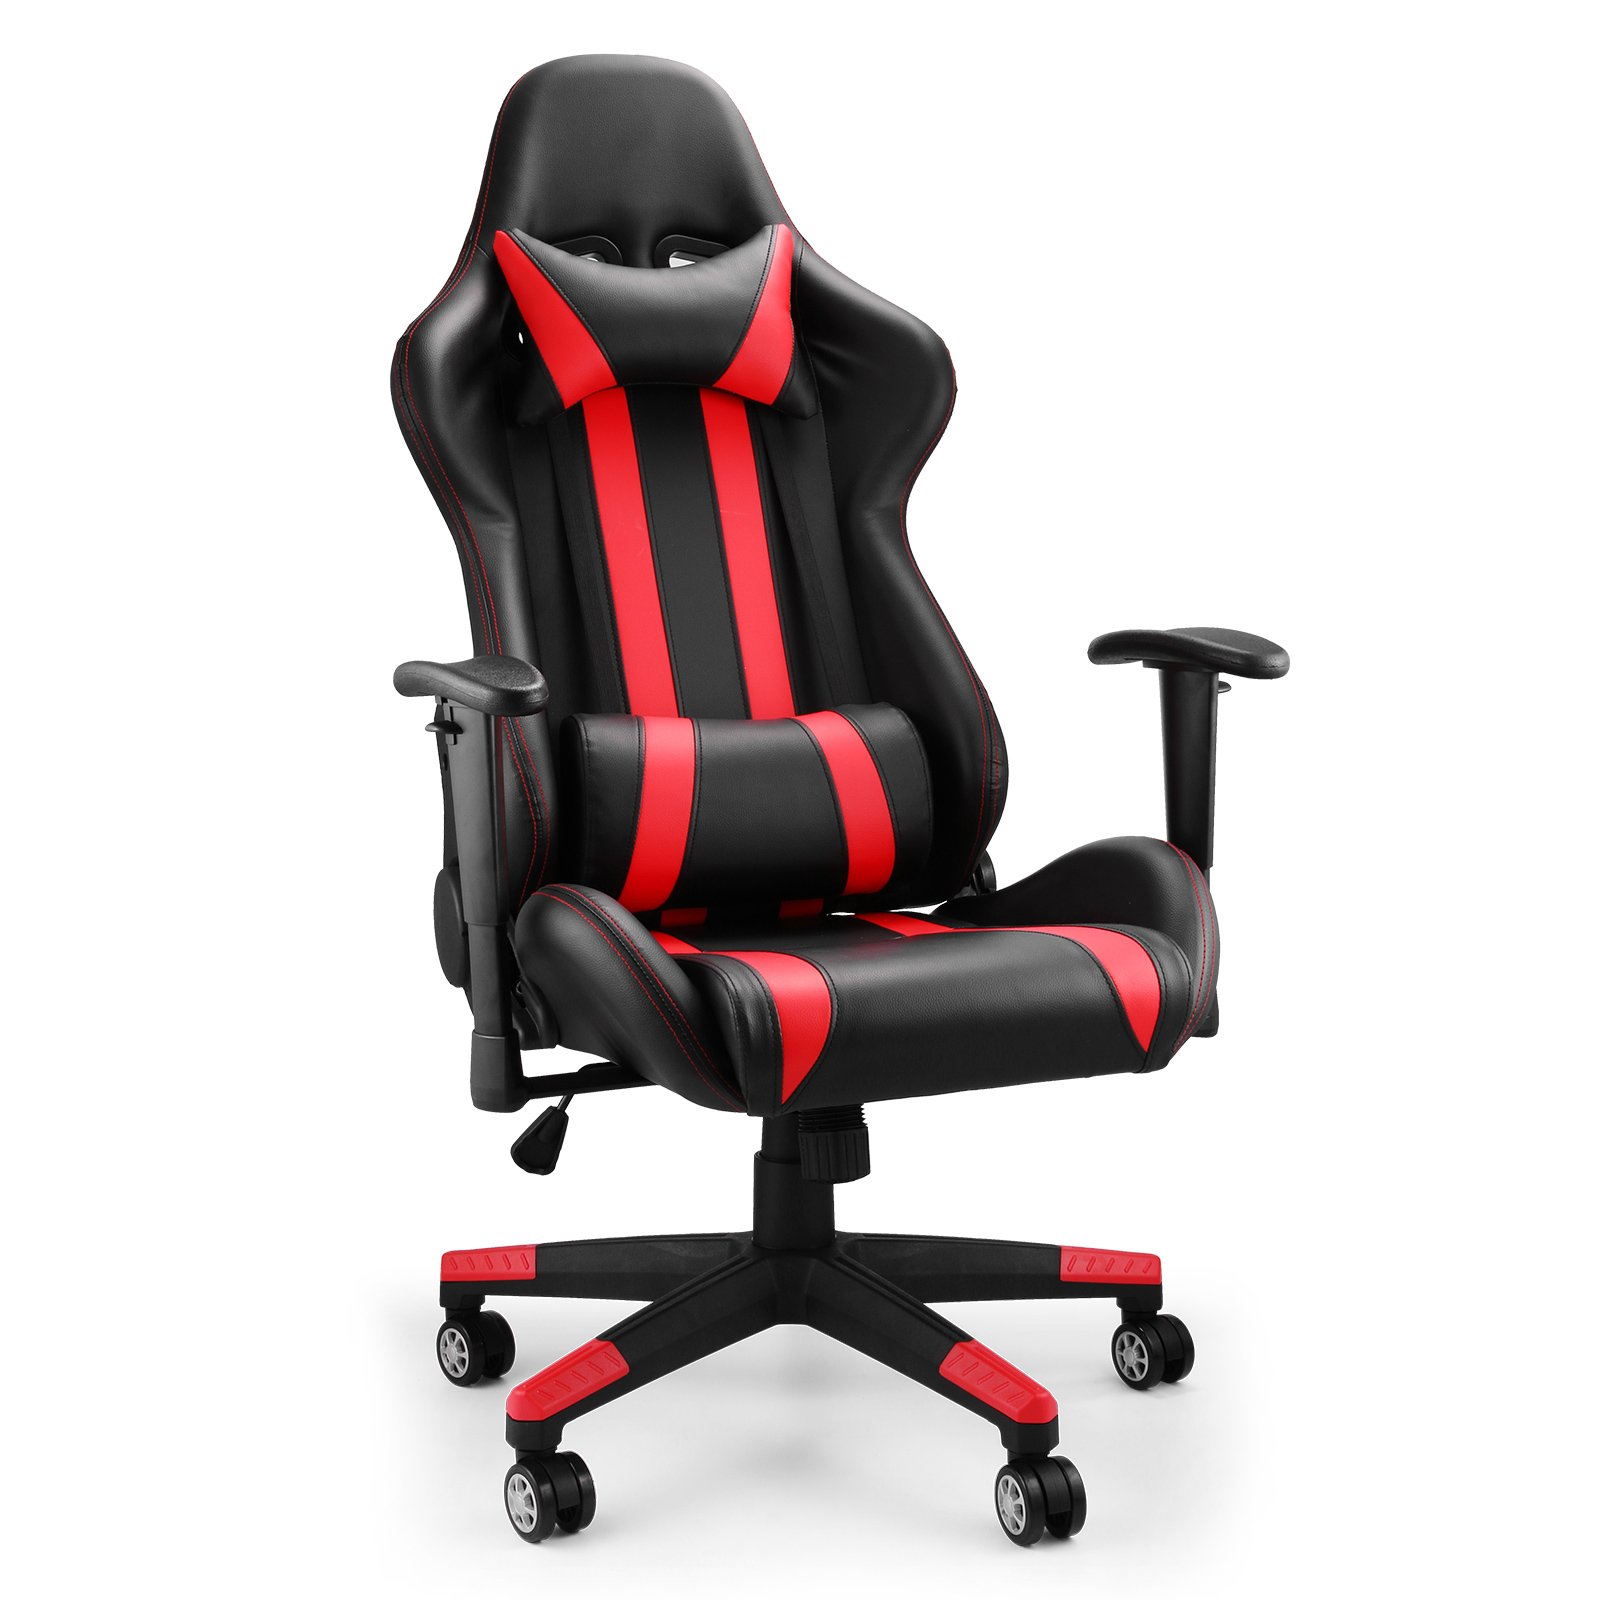 Mophorn High Back Reclining Chair Executive Racing Style Gaming Chair Ergonomic Design Racing Chair Rocker and Seat Height Adjustment Office Computer (Black and Red)